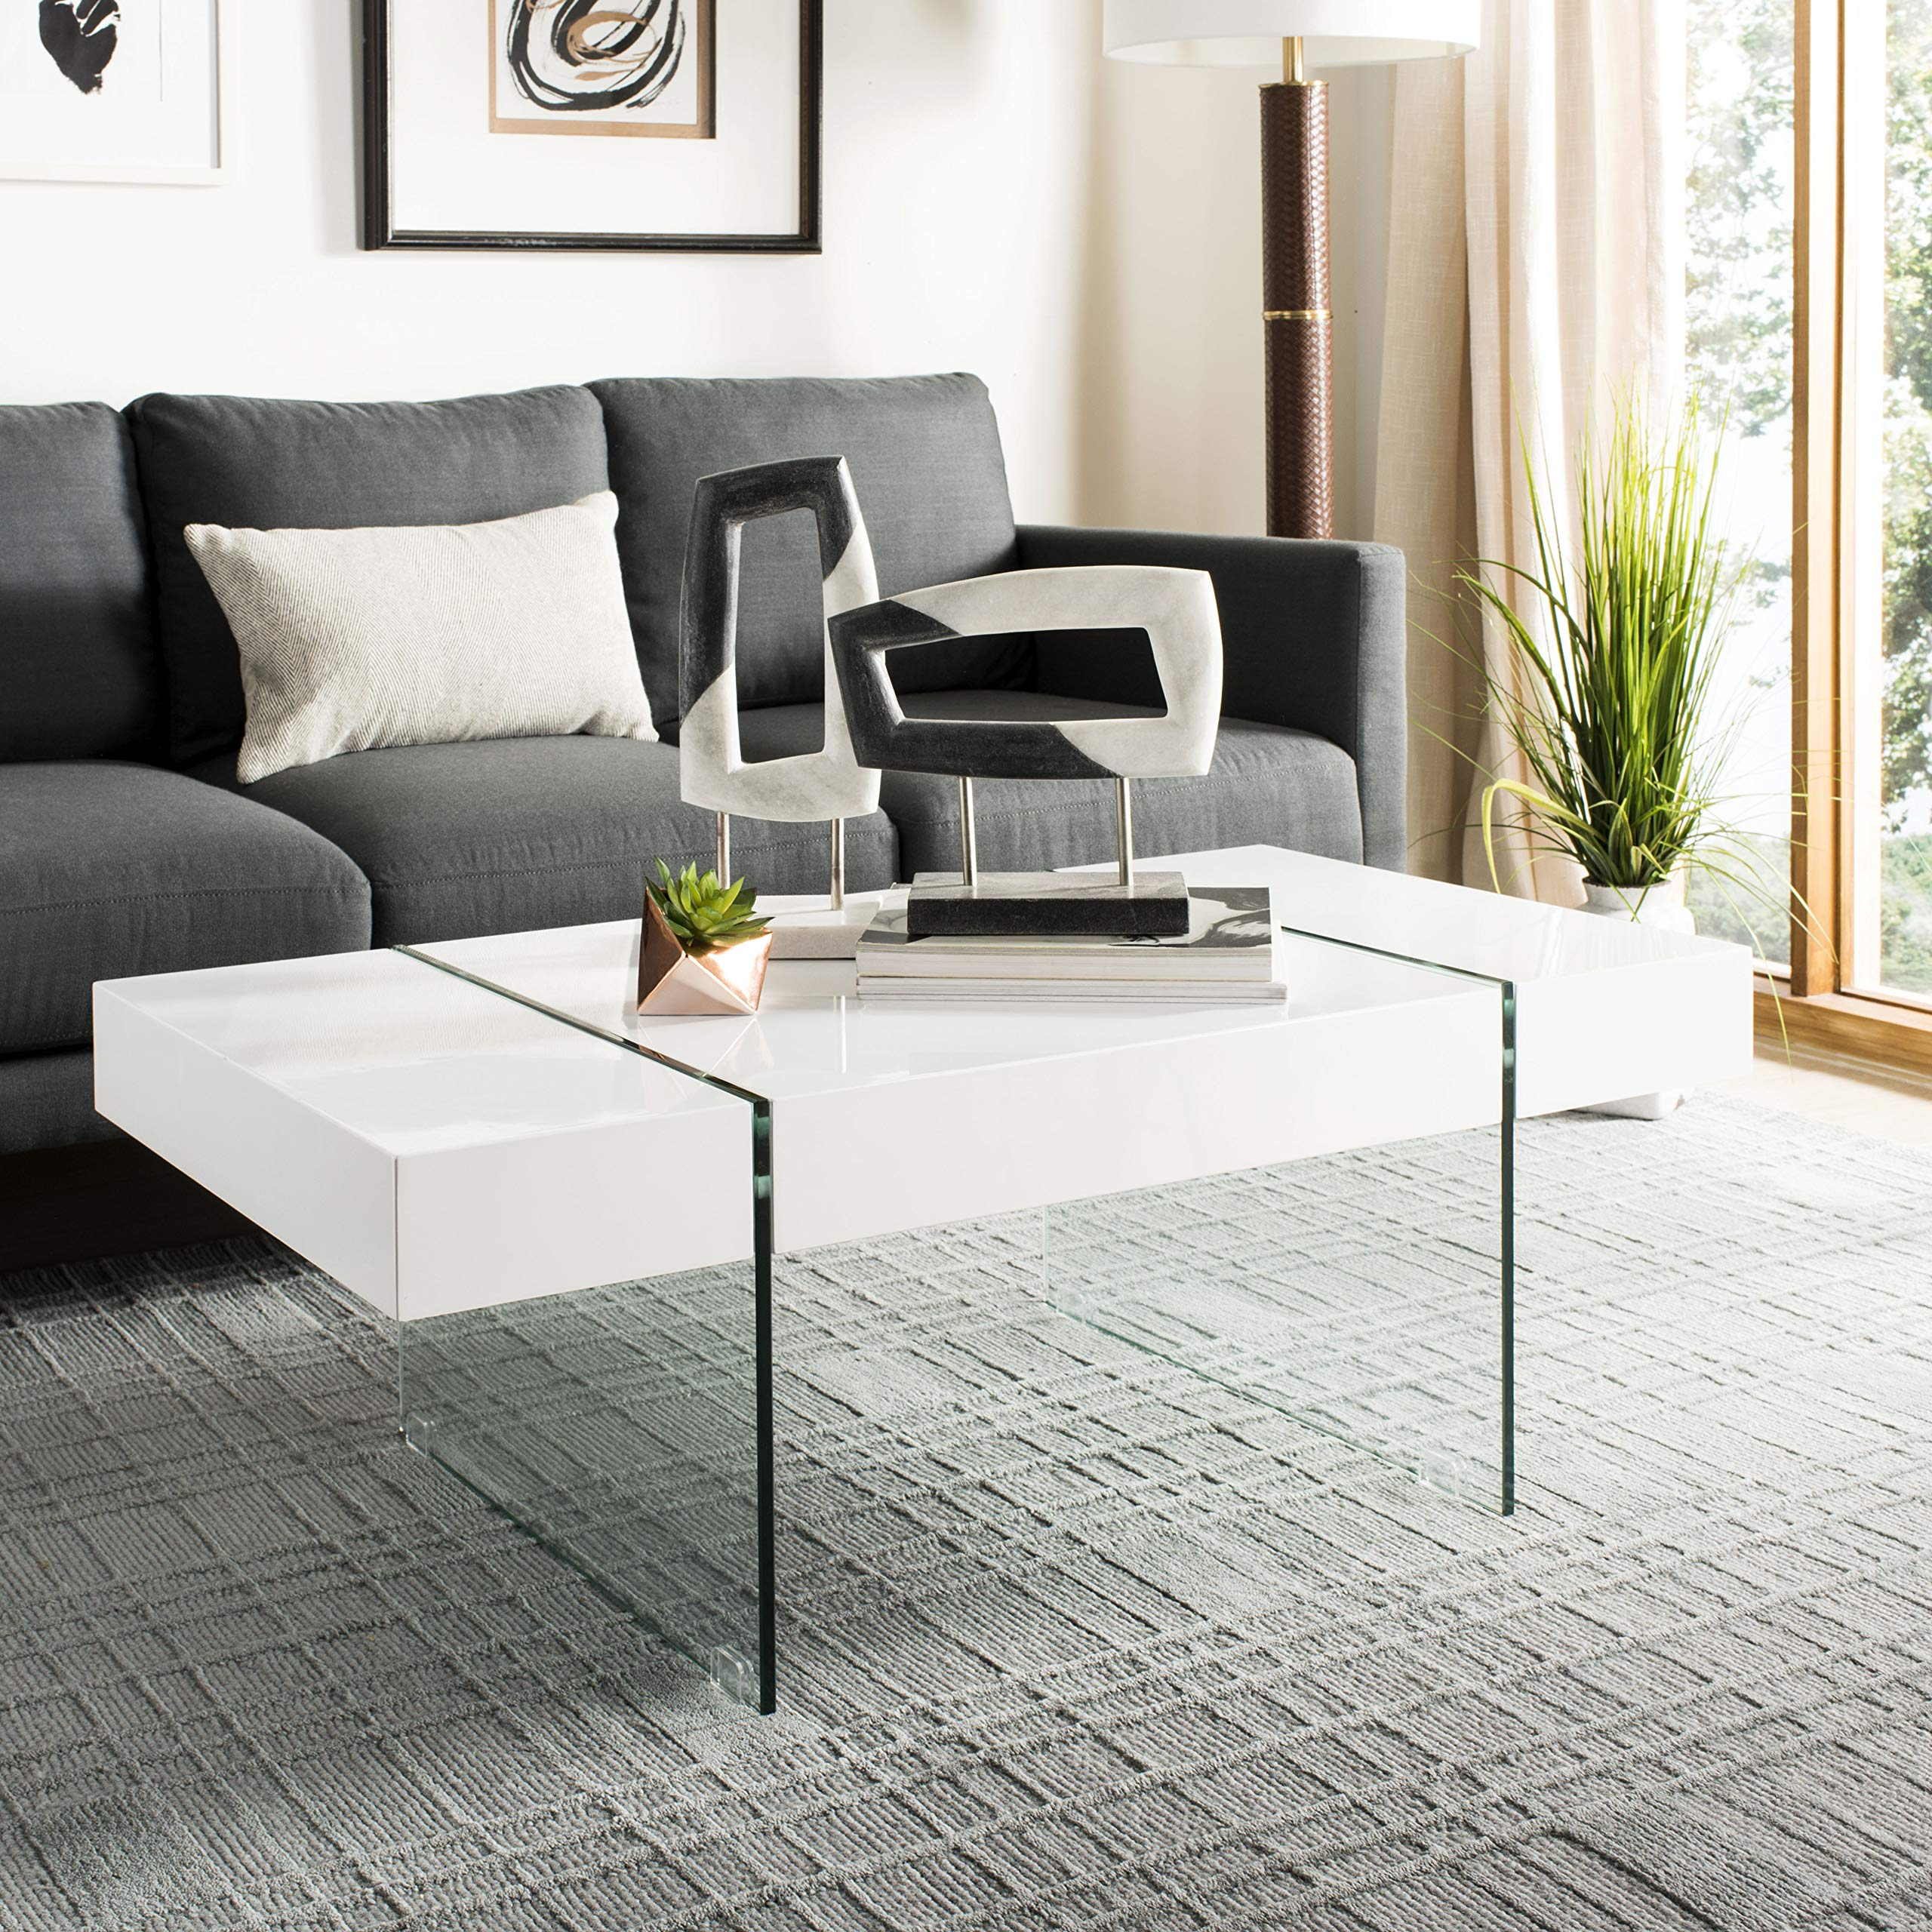 Safavieh Home Collection Jacob White Rectangular Glass Leg Modern Coffee Table by Safavieh